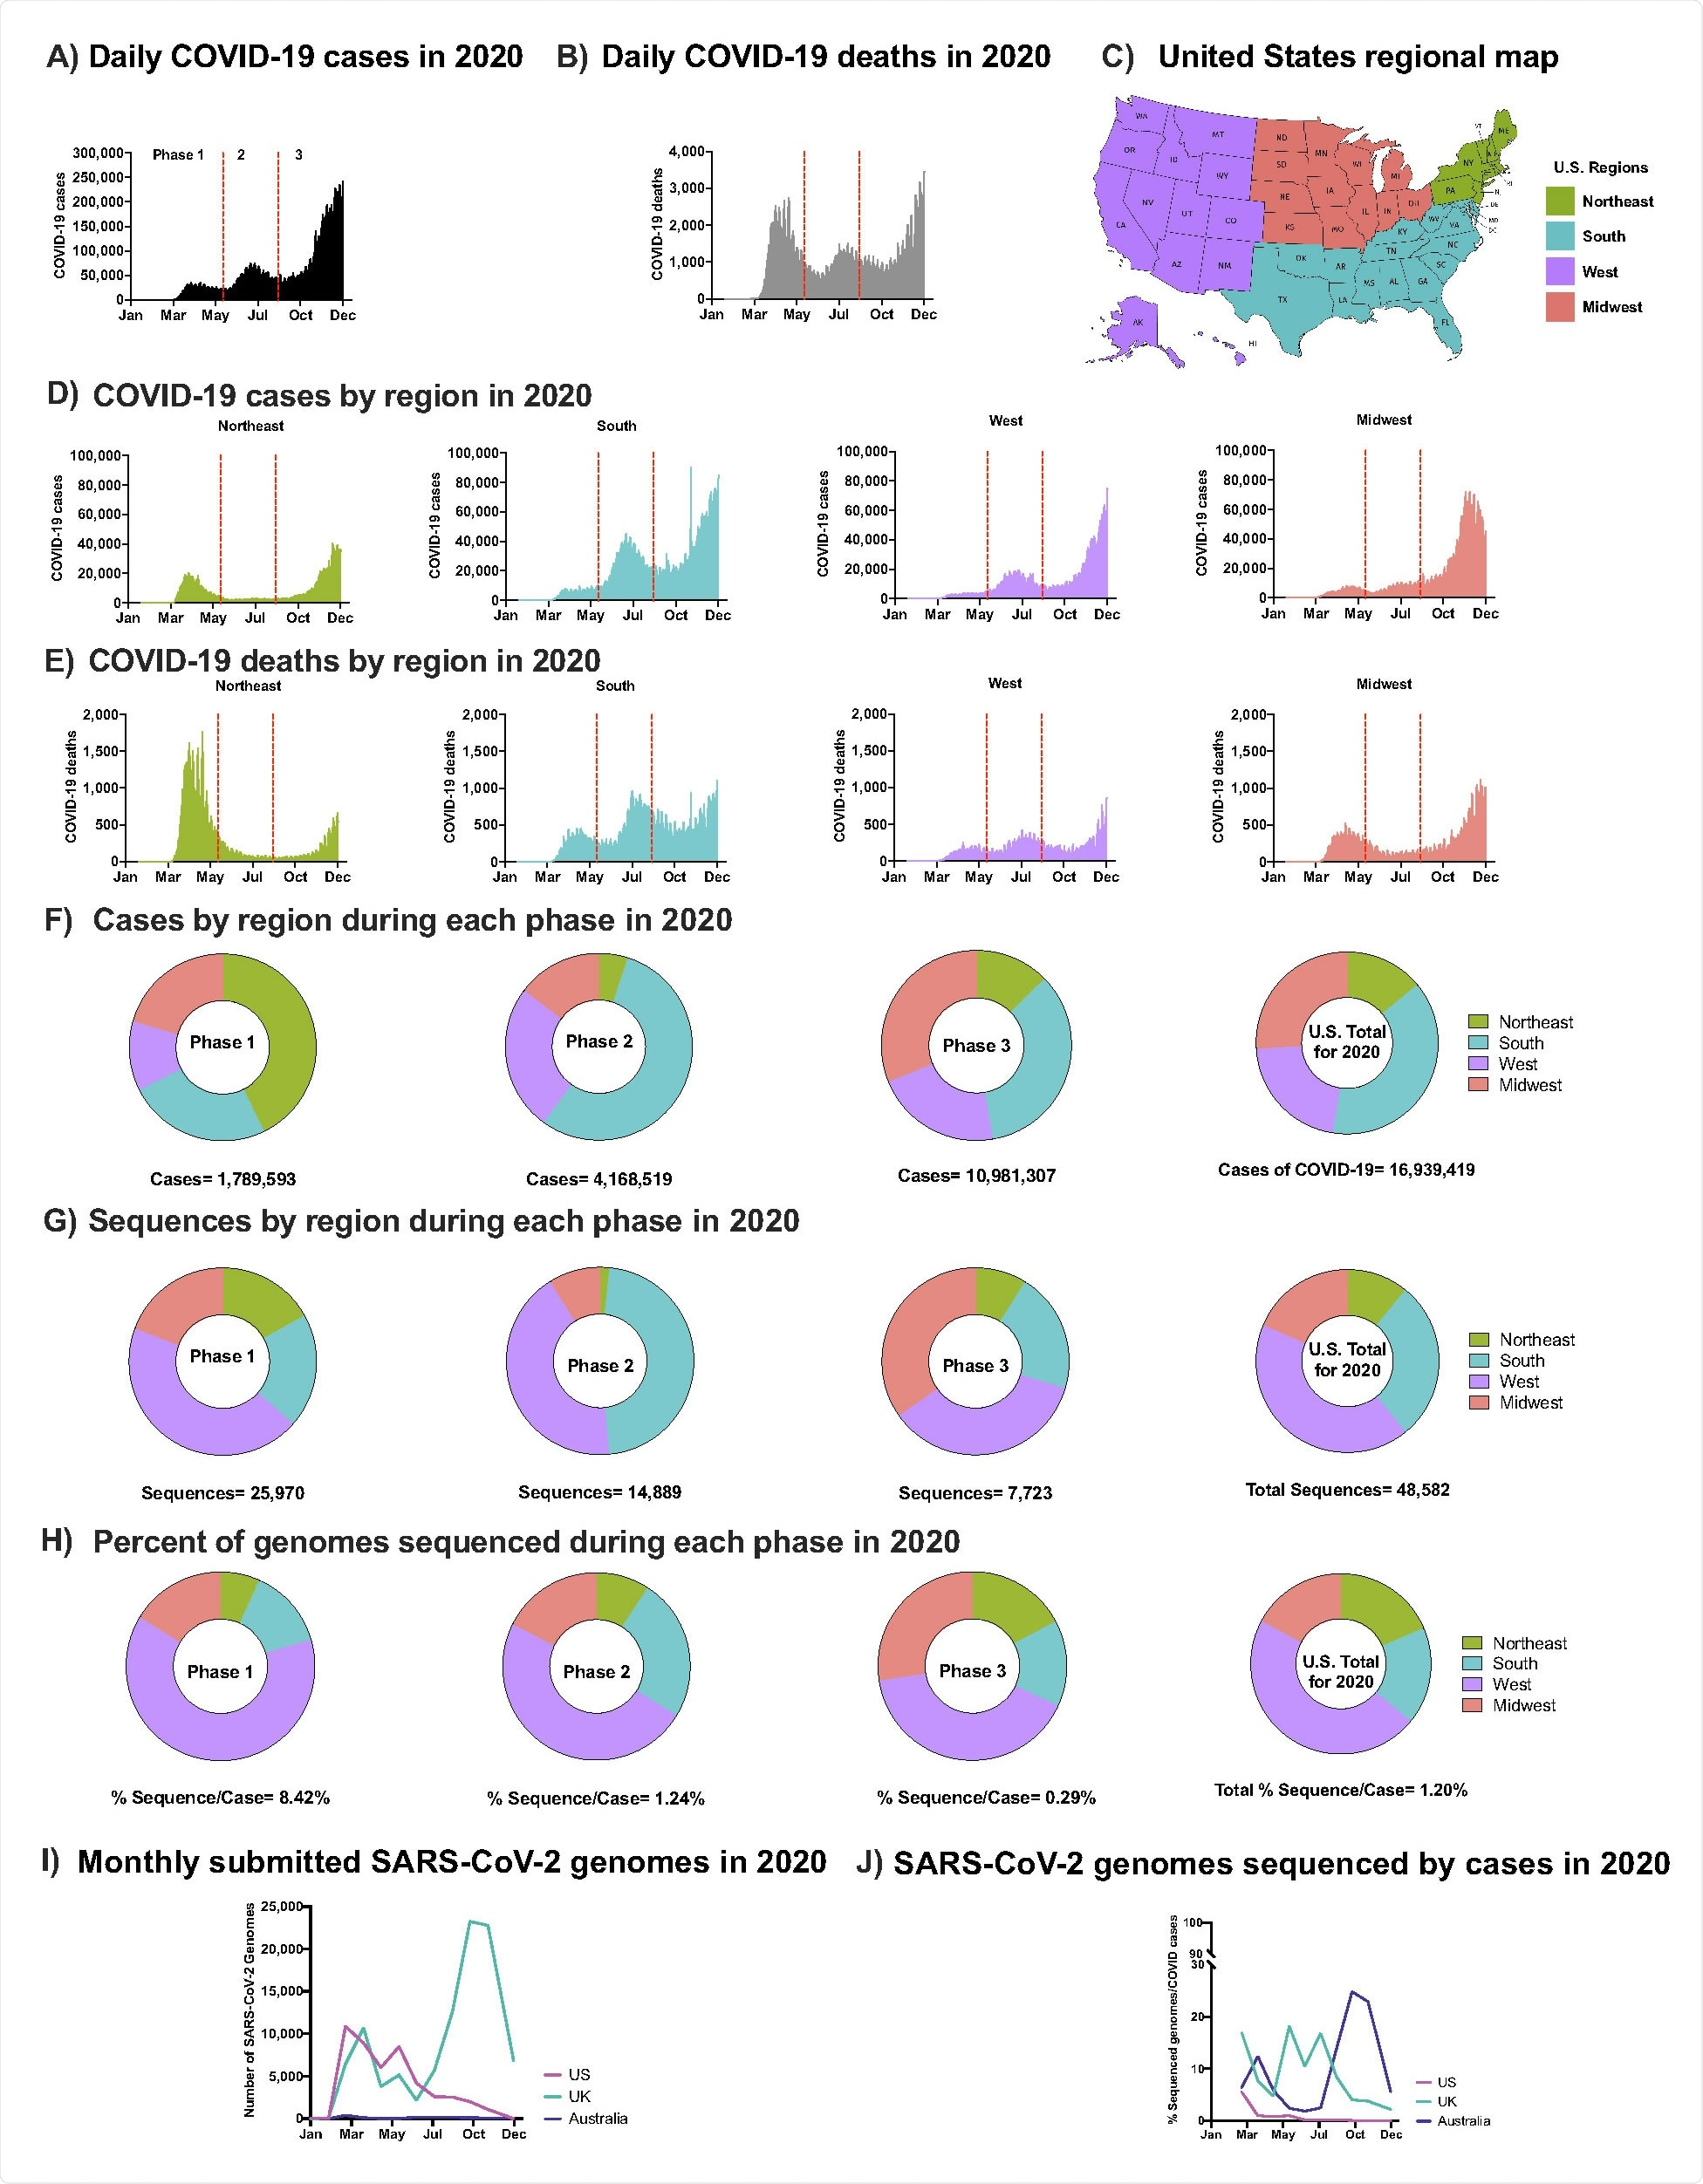 SARS-CoV-2 Epidemic in the U.S. in 2020 (A) Daily COVID-19 cases in the U.S. in 2020 (B) Daily COVID-19 deaths in the U.S. in 2020 (C) U.S. regional map colored by region (D) Number of COVID-19 cases in the U.S. in 2020 by region: Northeast, South, West, Midwest, respectively. (E) Number of COVID-19 deaths in the U.S. in 2020 by region. (A-B & D-E) Separation of Phases is denoted by vertical dotted red lines. Data were smoothed by a moving 3-day average. (F) Proportion of COVID-19 cases by region during each phase and the overall contribution to the U.S. total in 2020. (G) Proportion of SARS-CoV-2 sequences accessed (submission as of December 15th, 2020) by region during each phase and the overall contribution to the U.S. total in 2020 (H) The number of sequneces per case were obtained by each region during each phase and the U.S. total in 2020. (F-H) Highlights Phase 1, 2, and 3, followed with U.S. total of 2020. (I) Total number of sequences submitted to GISAID from the U.K., Australia, and the U.S. by December 15th, 2020. (J) Submitted SARS-CoV-2 genomes normalized to the number of COVID-19 cases from the U.K., Australia, and the U.S.